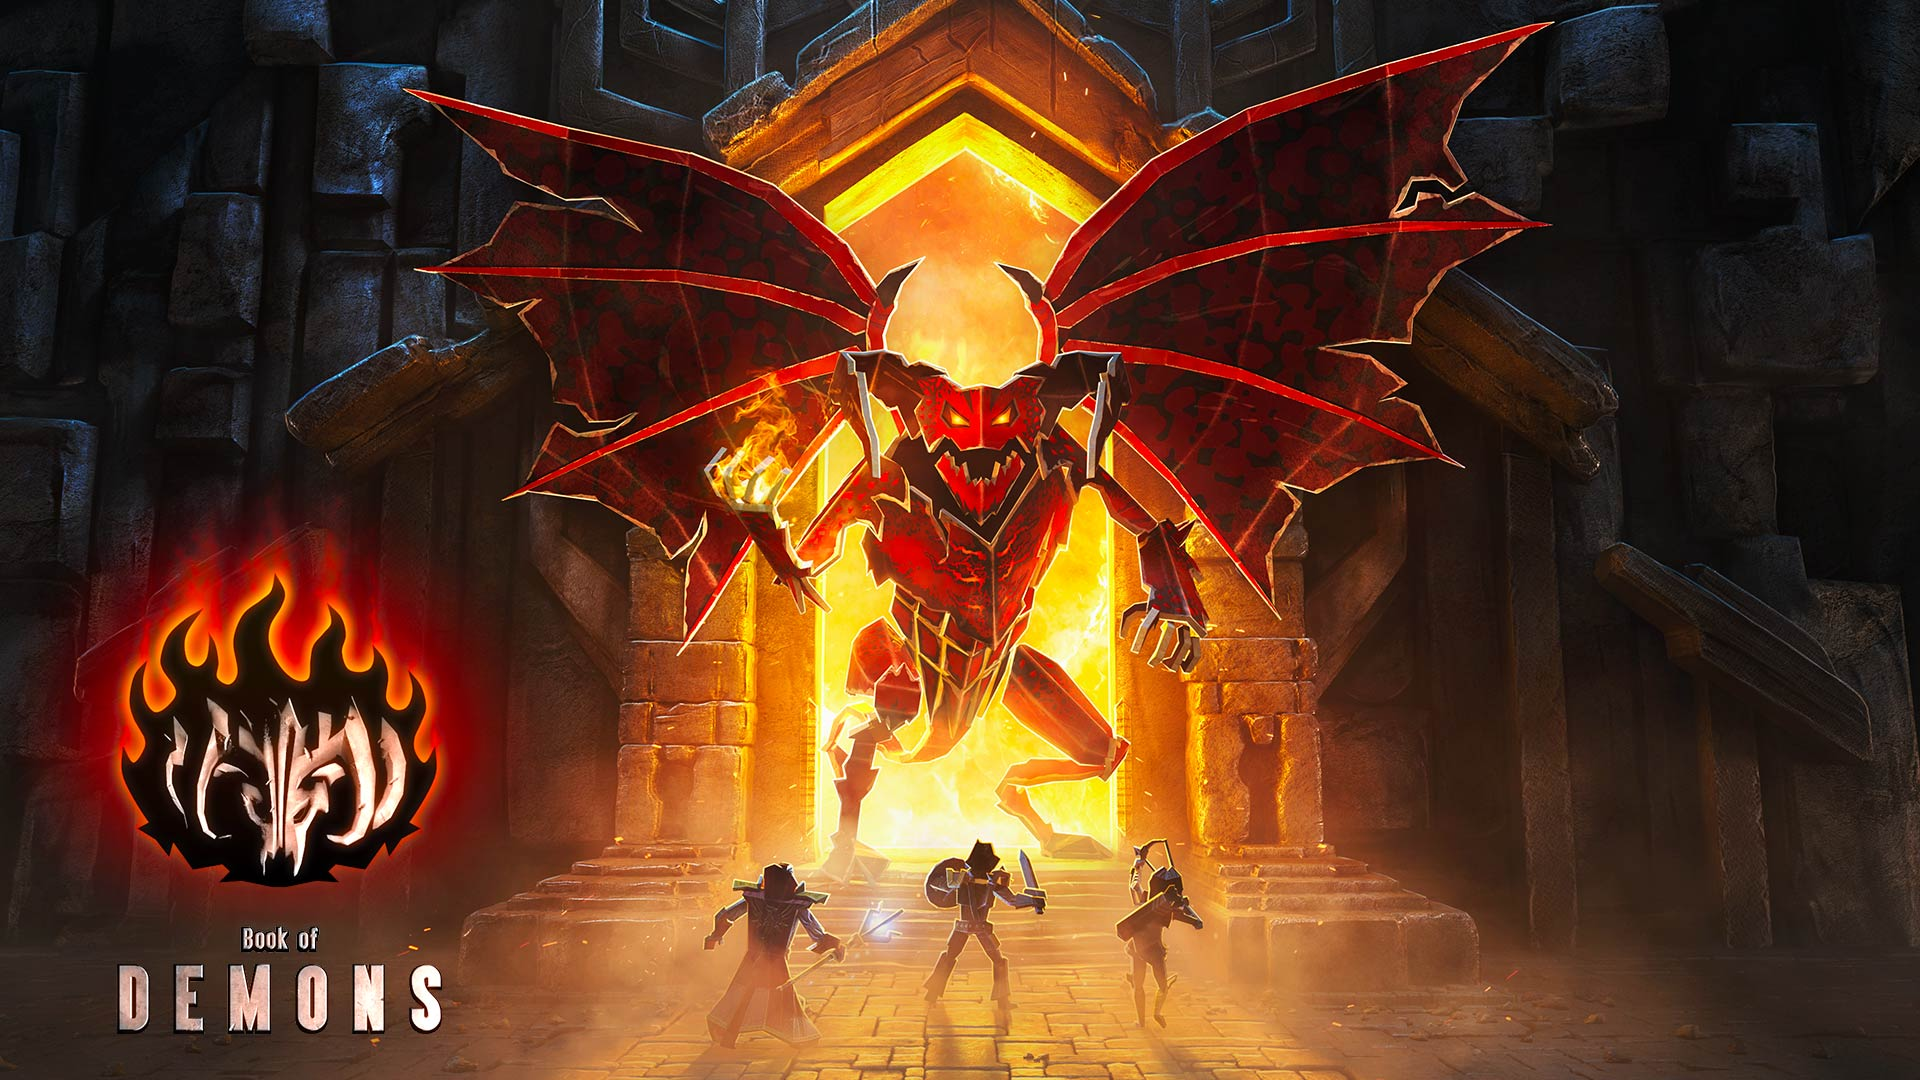 Book of Demons in arrivo su Nintendo Switch, PlayStation 4 e Xbox One thumbnail